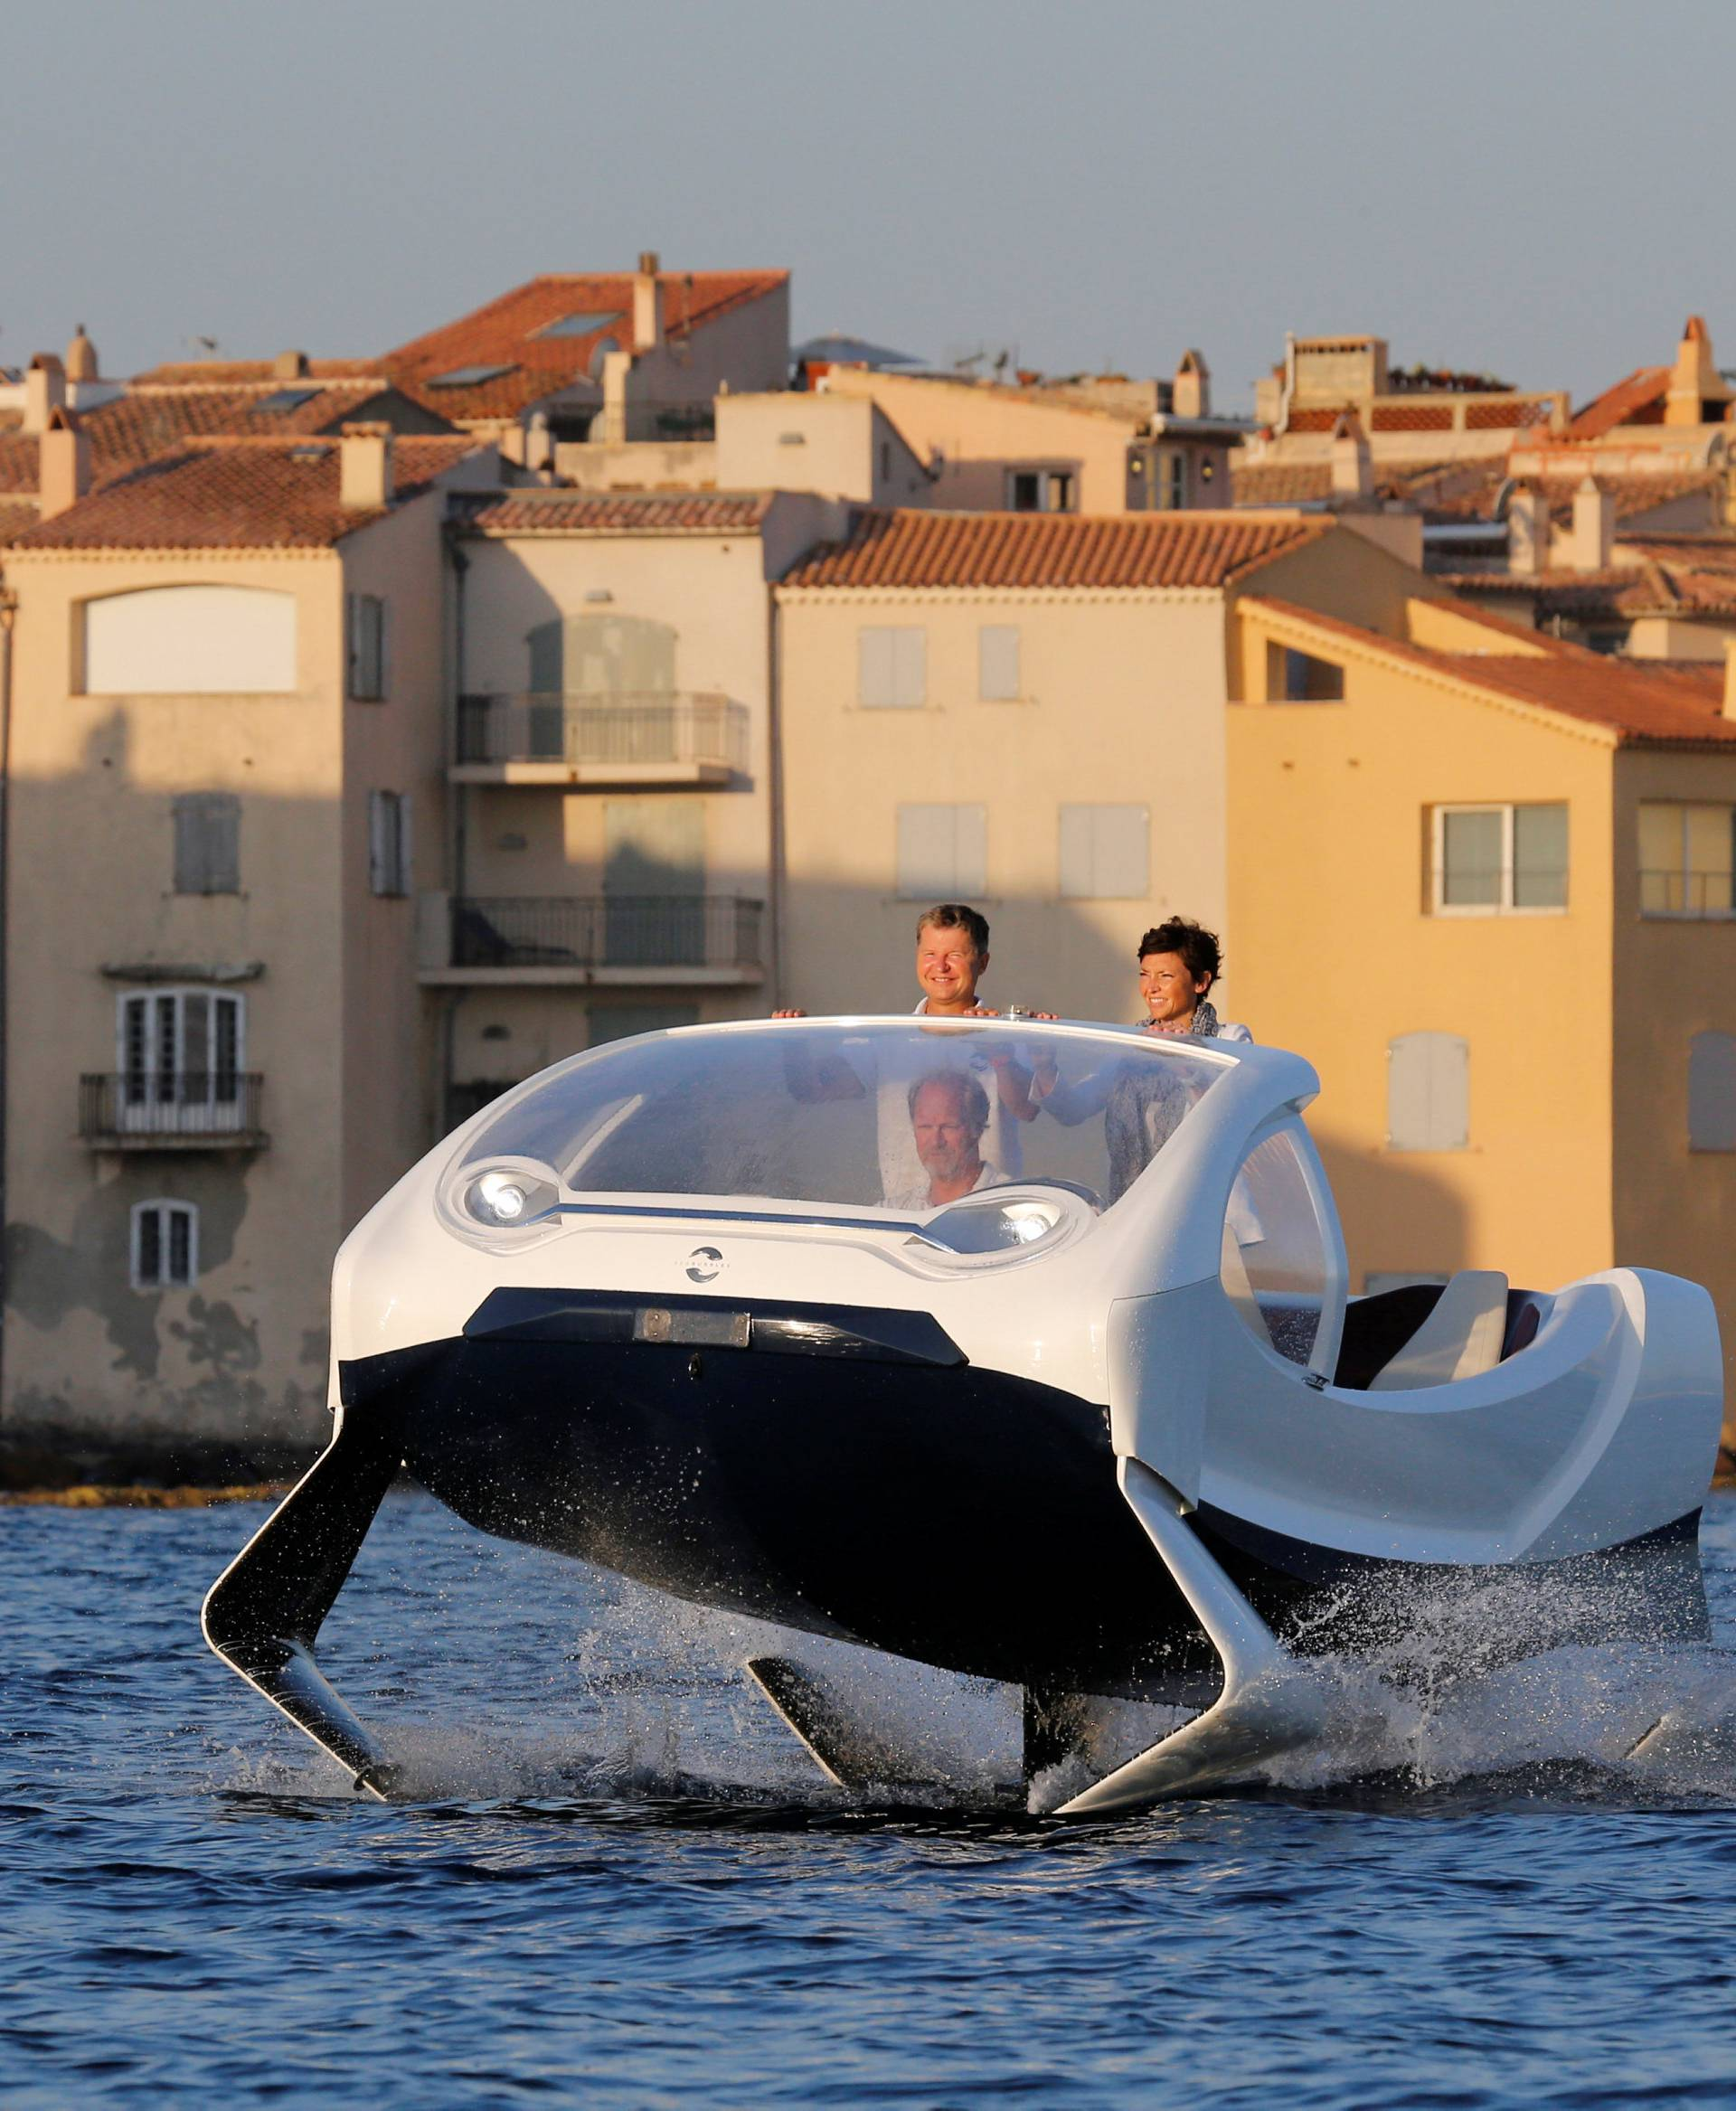 SeaBubbles' water taxi prototype is presented in the harbour of Saint-Tropez